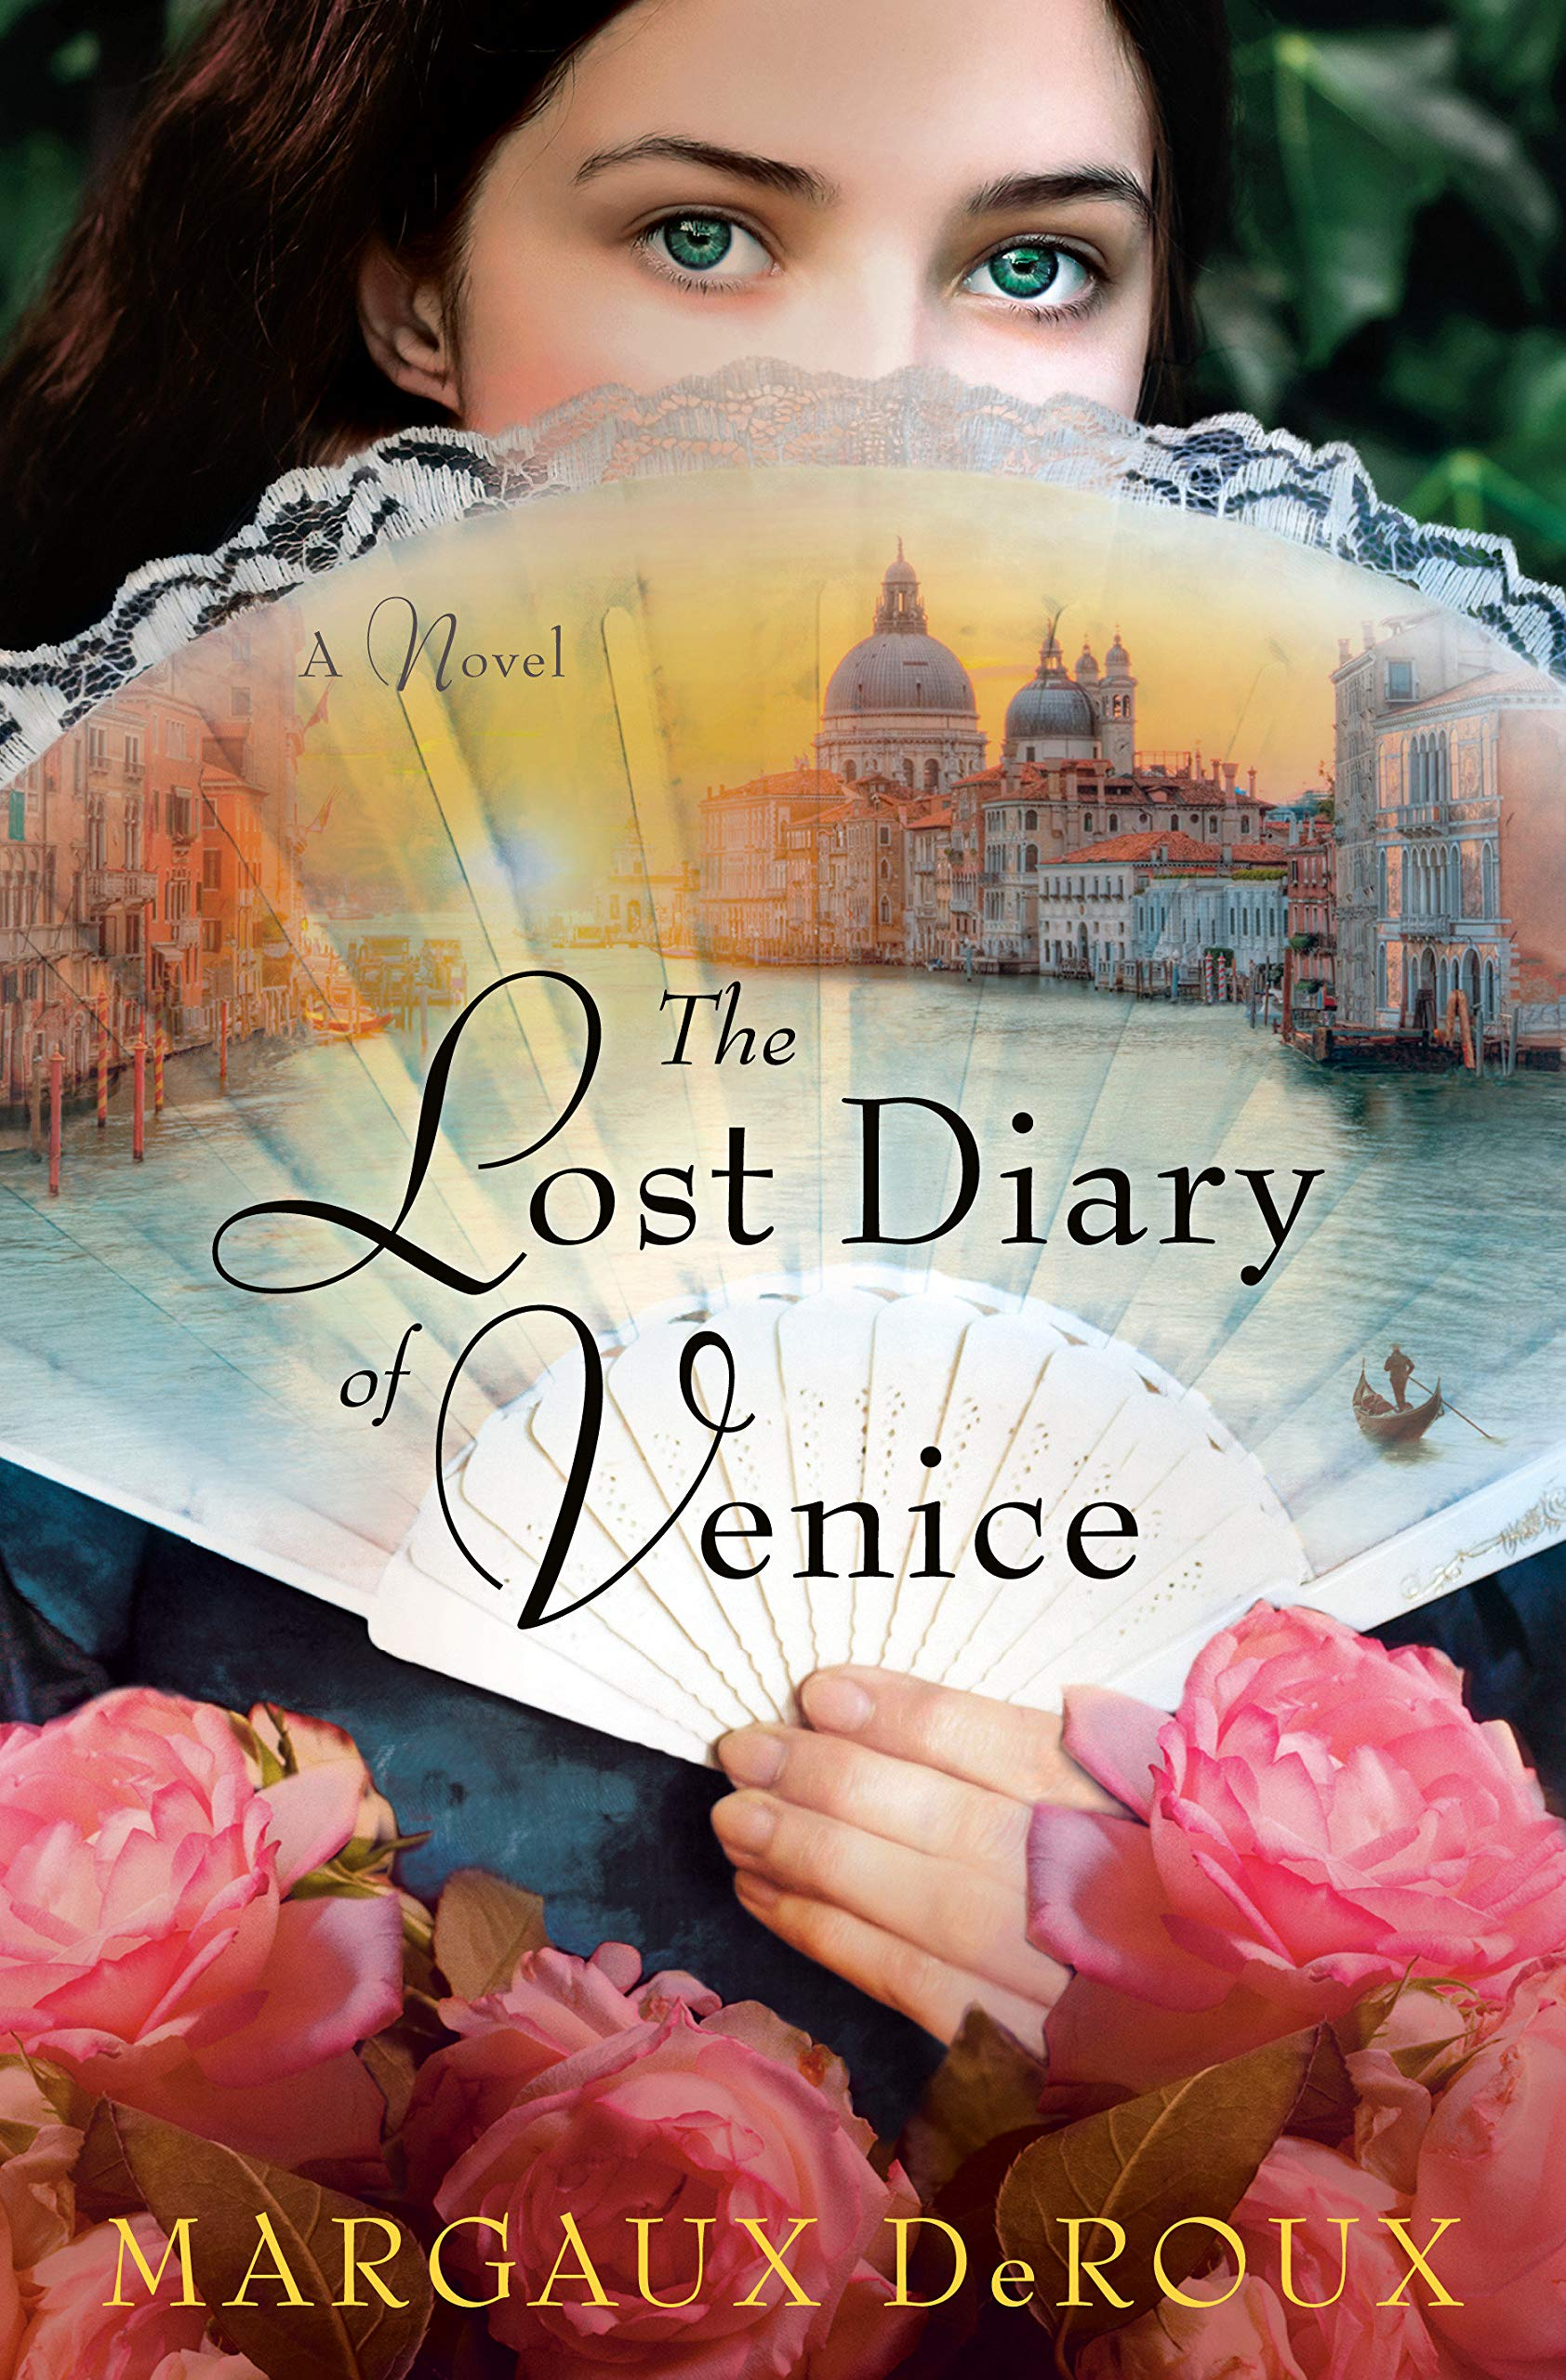 The Lost Diary of Venice - Margaux DeRoux